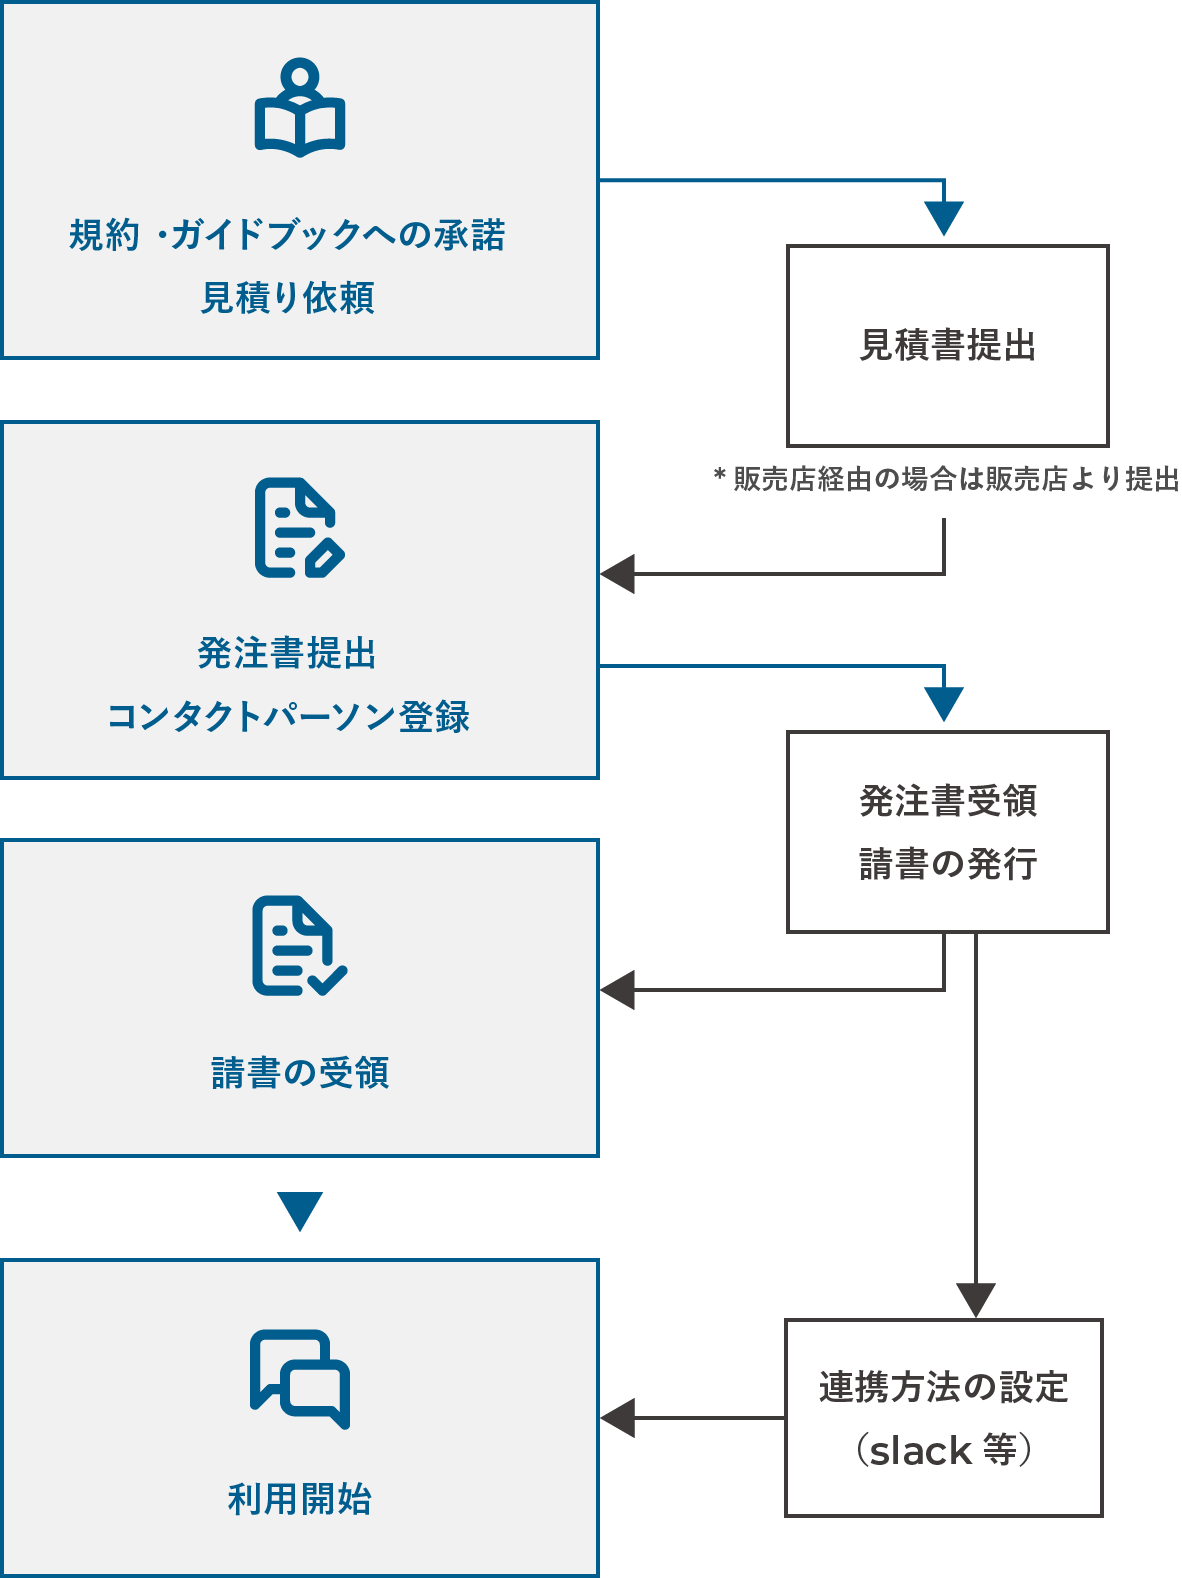 obniz Solution Expert Sevice for Partner 利用フロー